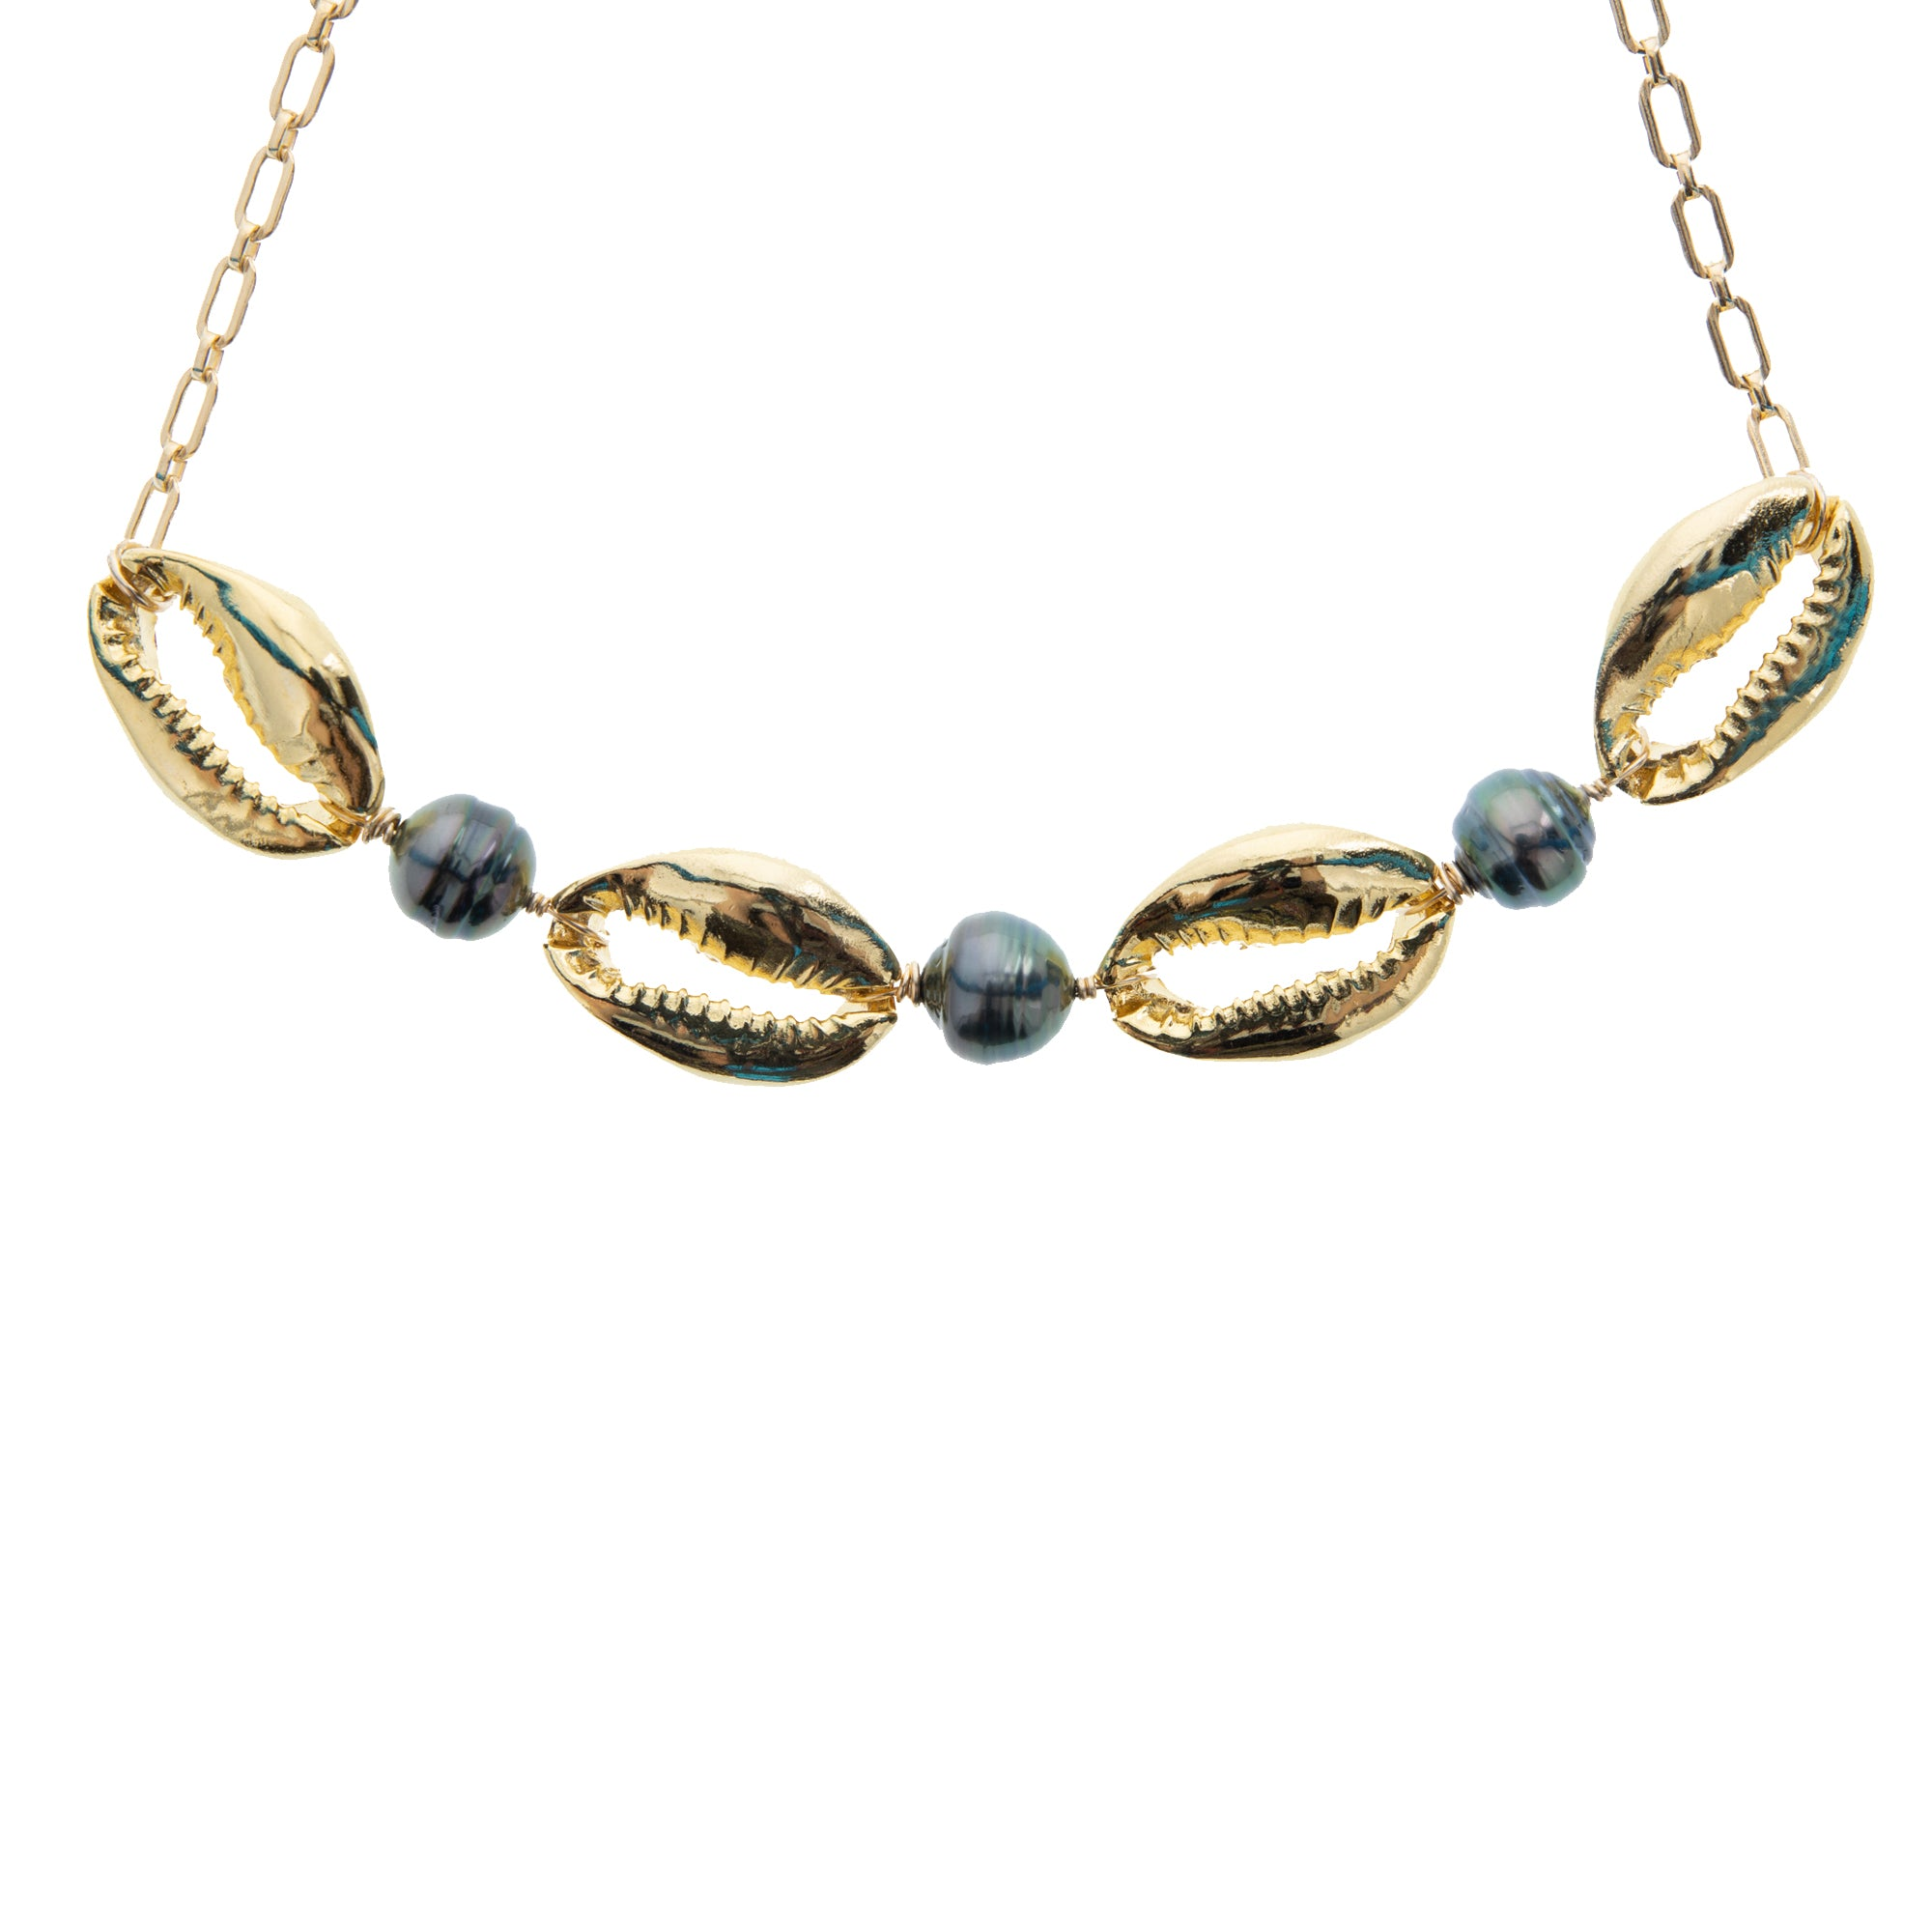 Makaha Necklace - 21 Degrees North Designs